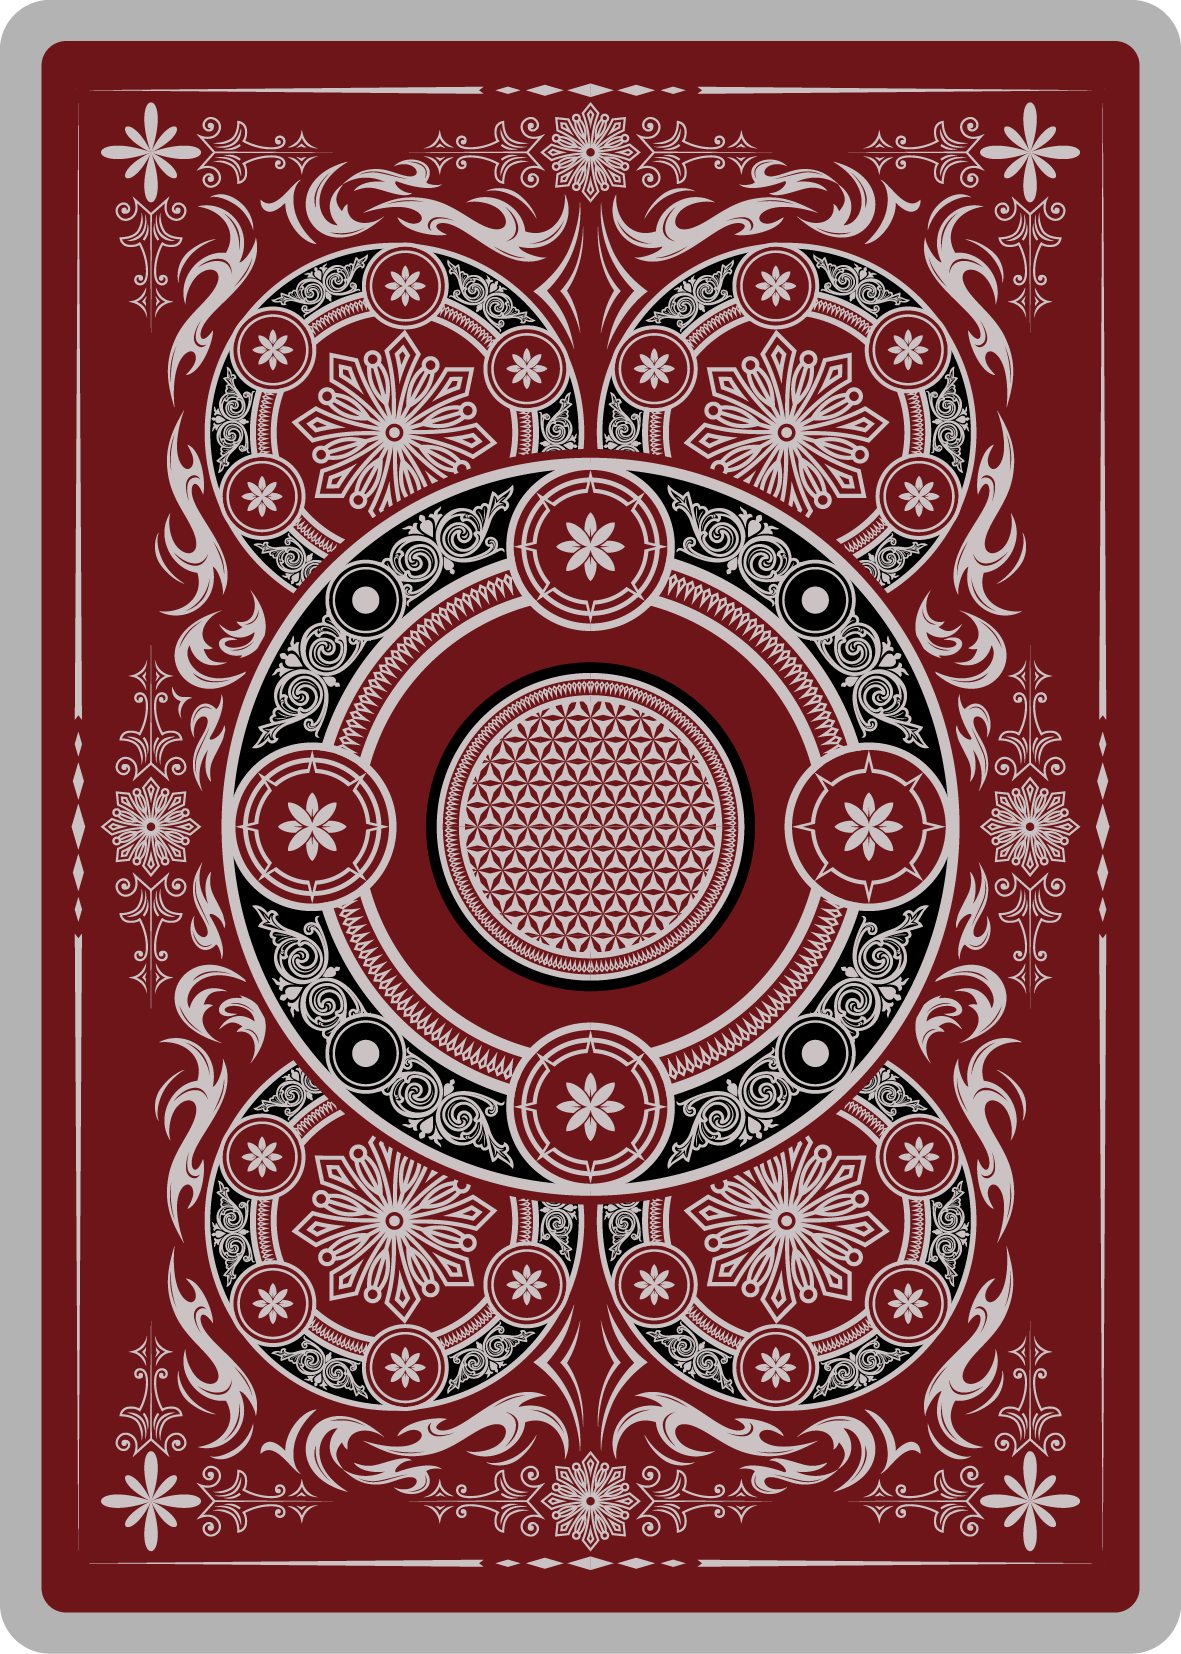 Playing card design that gives off a premium vibe